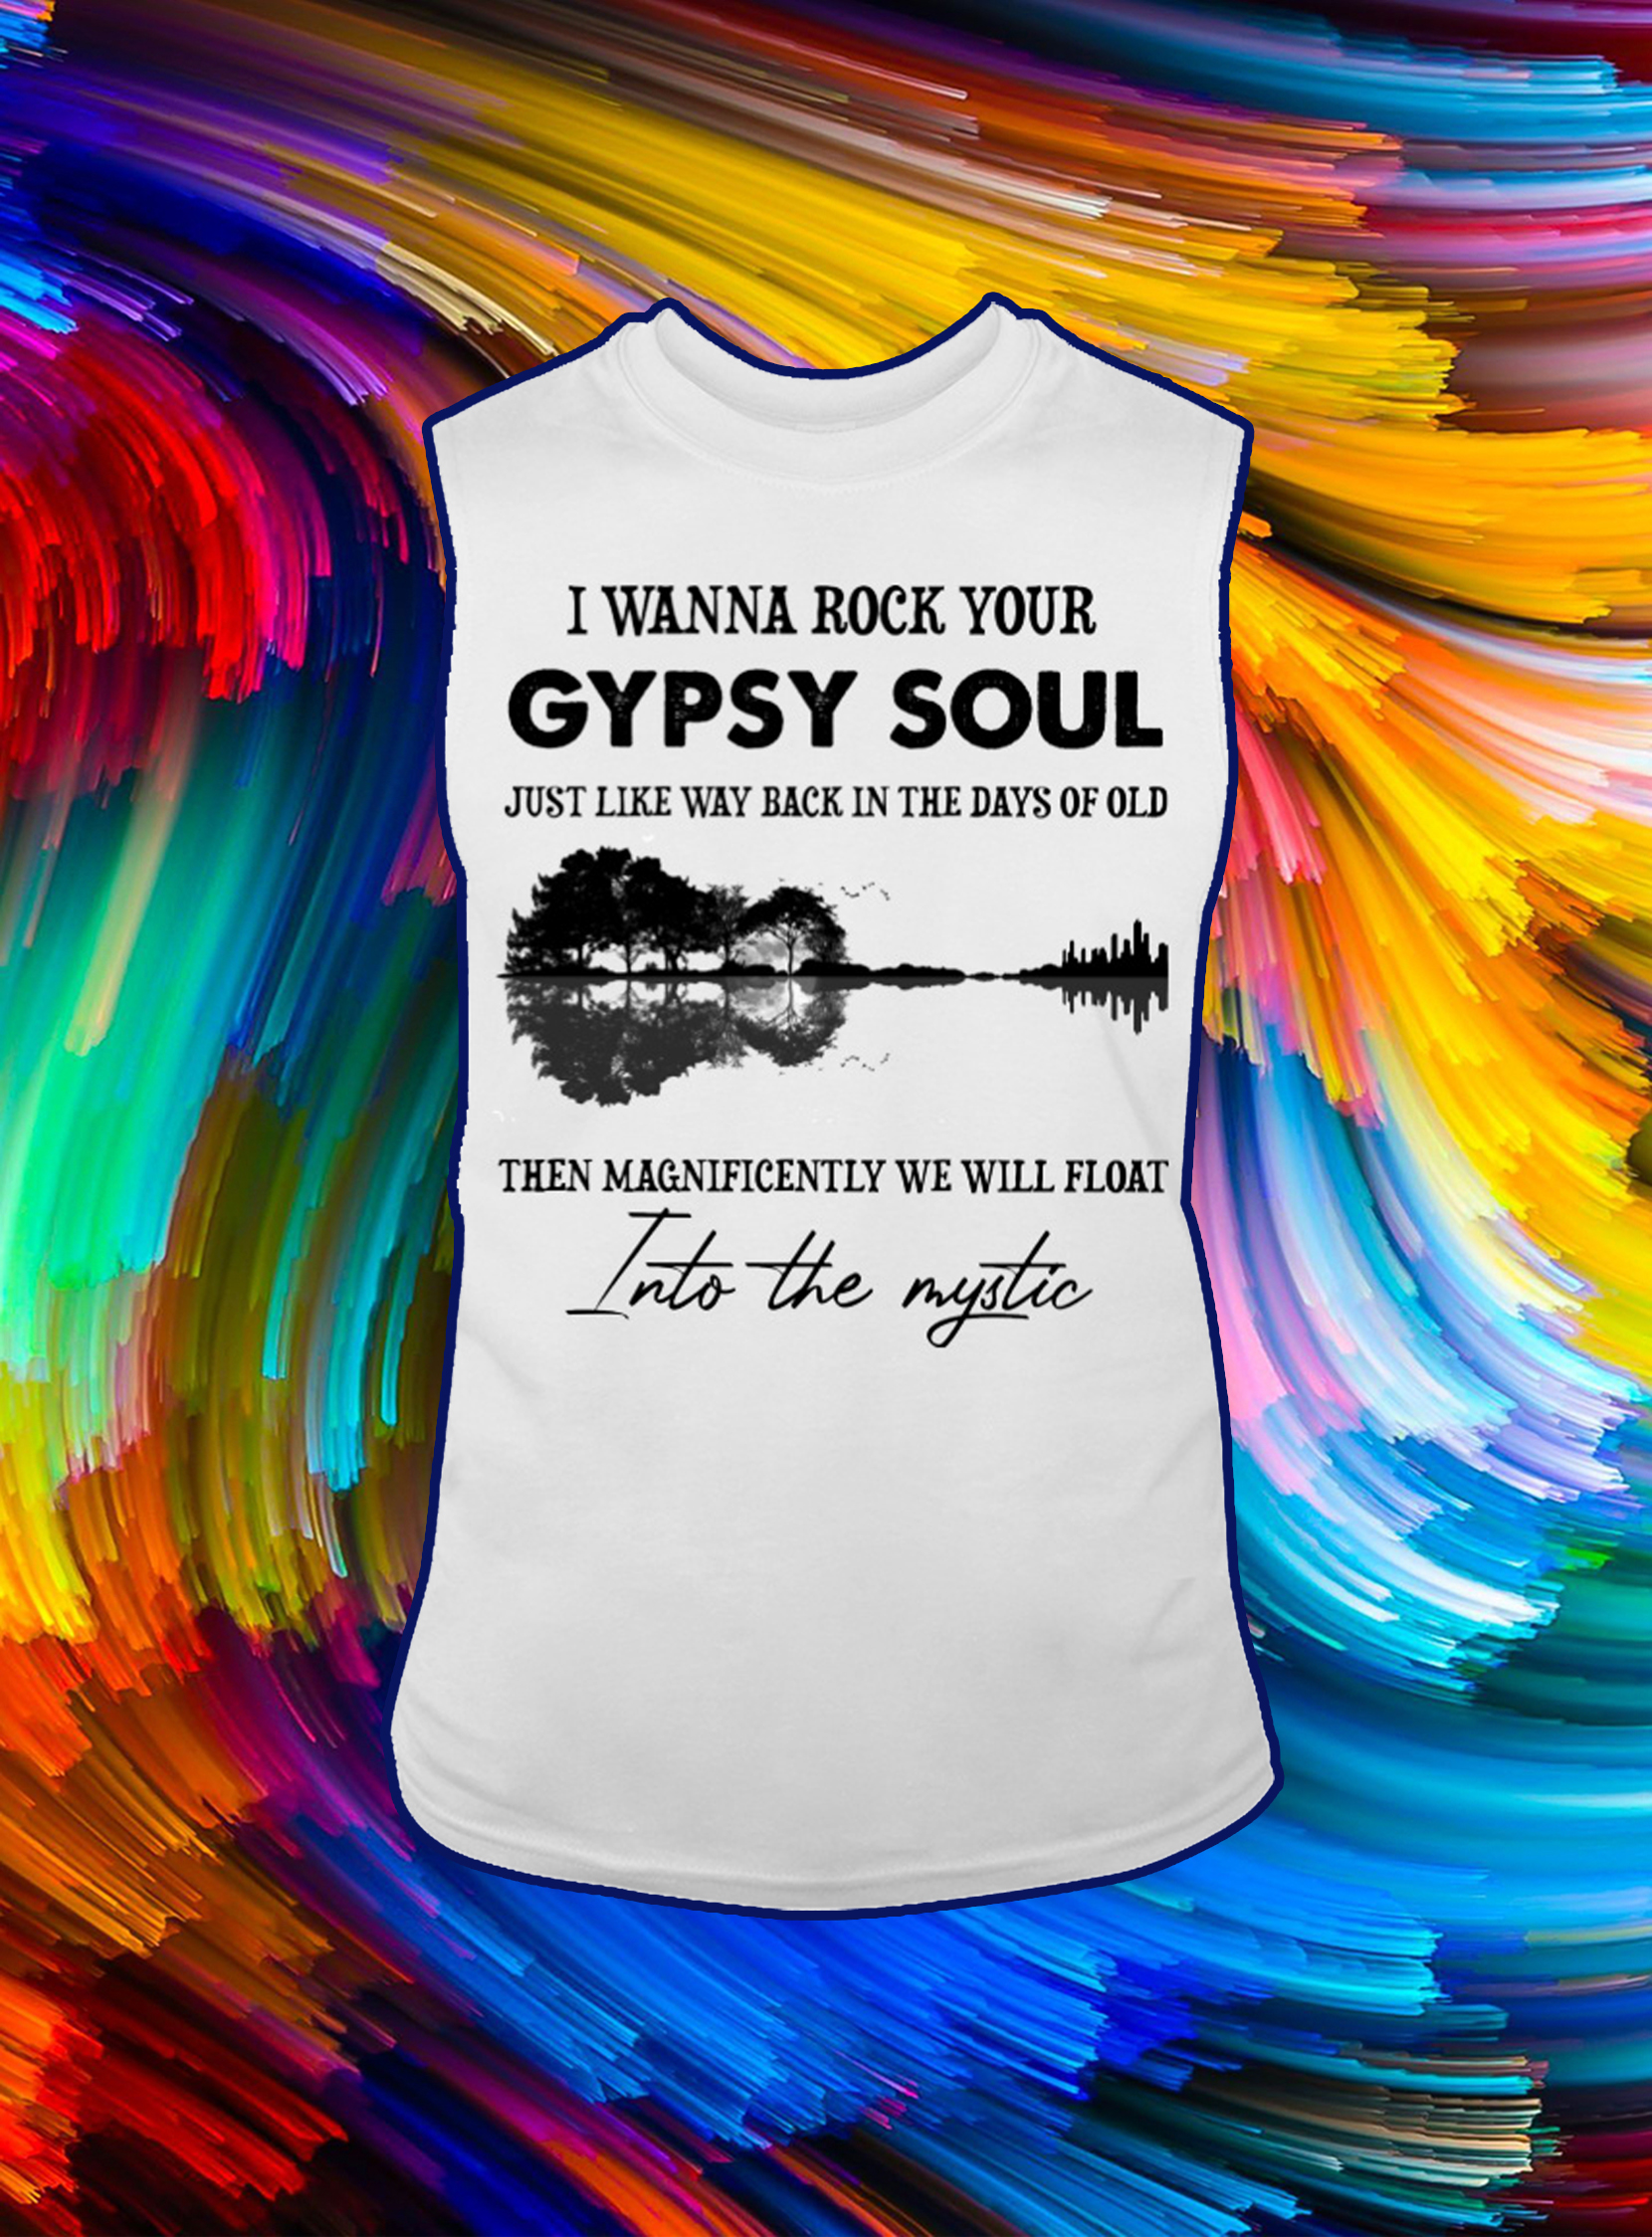 Guitar reflection I wanna rock your gypsy soul just like way back in the days of old tank top